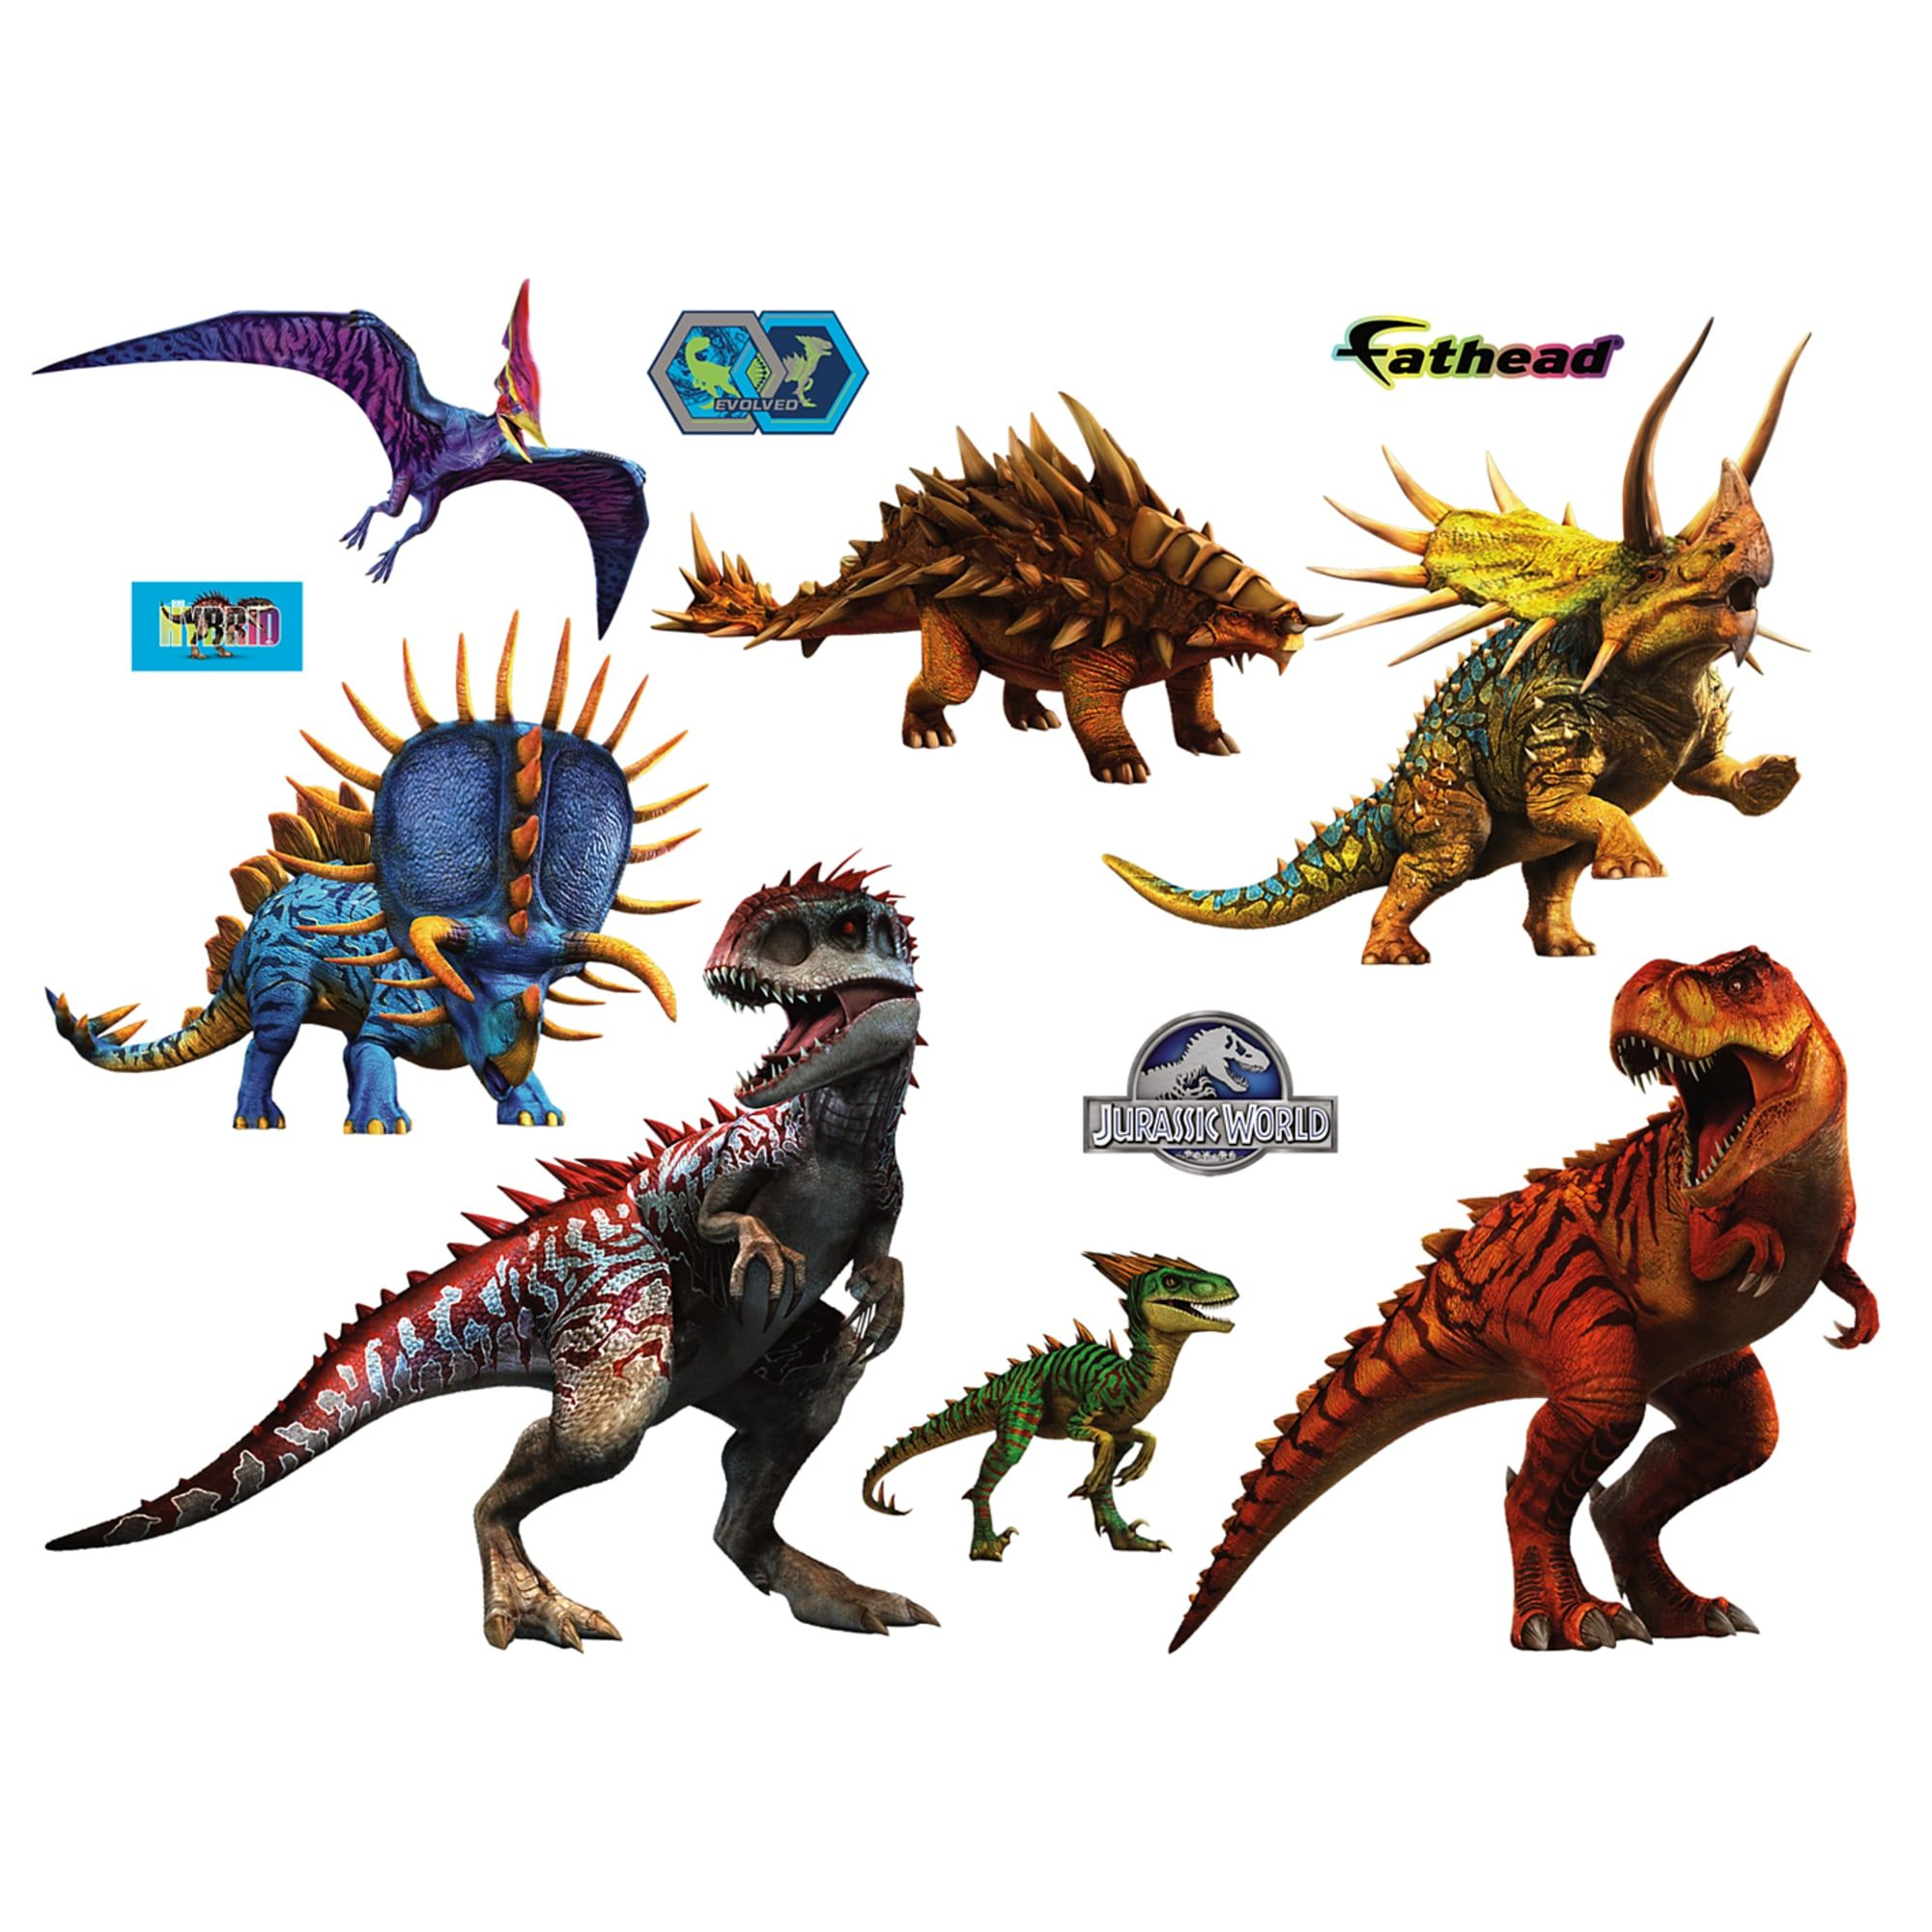 Jurassic World Hybrid Dinosaurs Collection X Large Officially Licensed Removable Wall Graphics Jurassic World Hybrid Dinosaur Wall Stickers Jurassic World